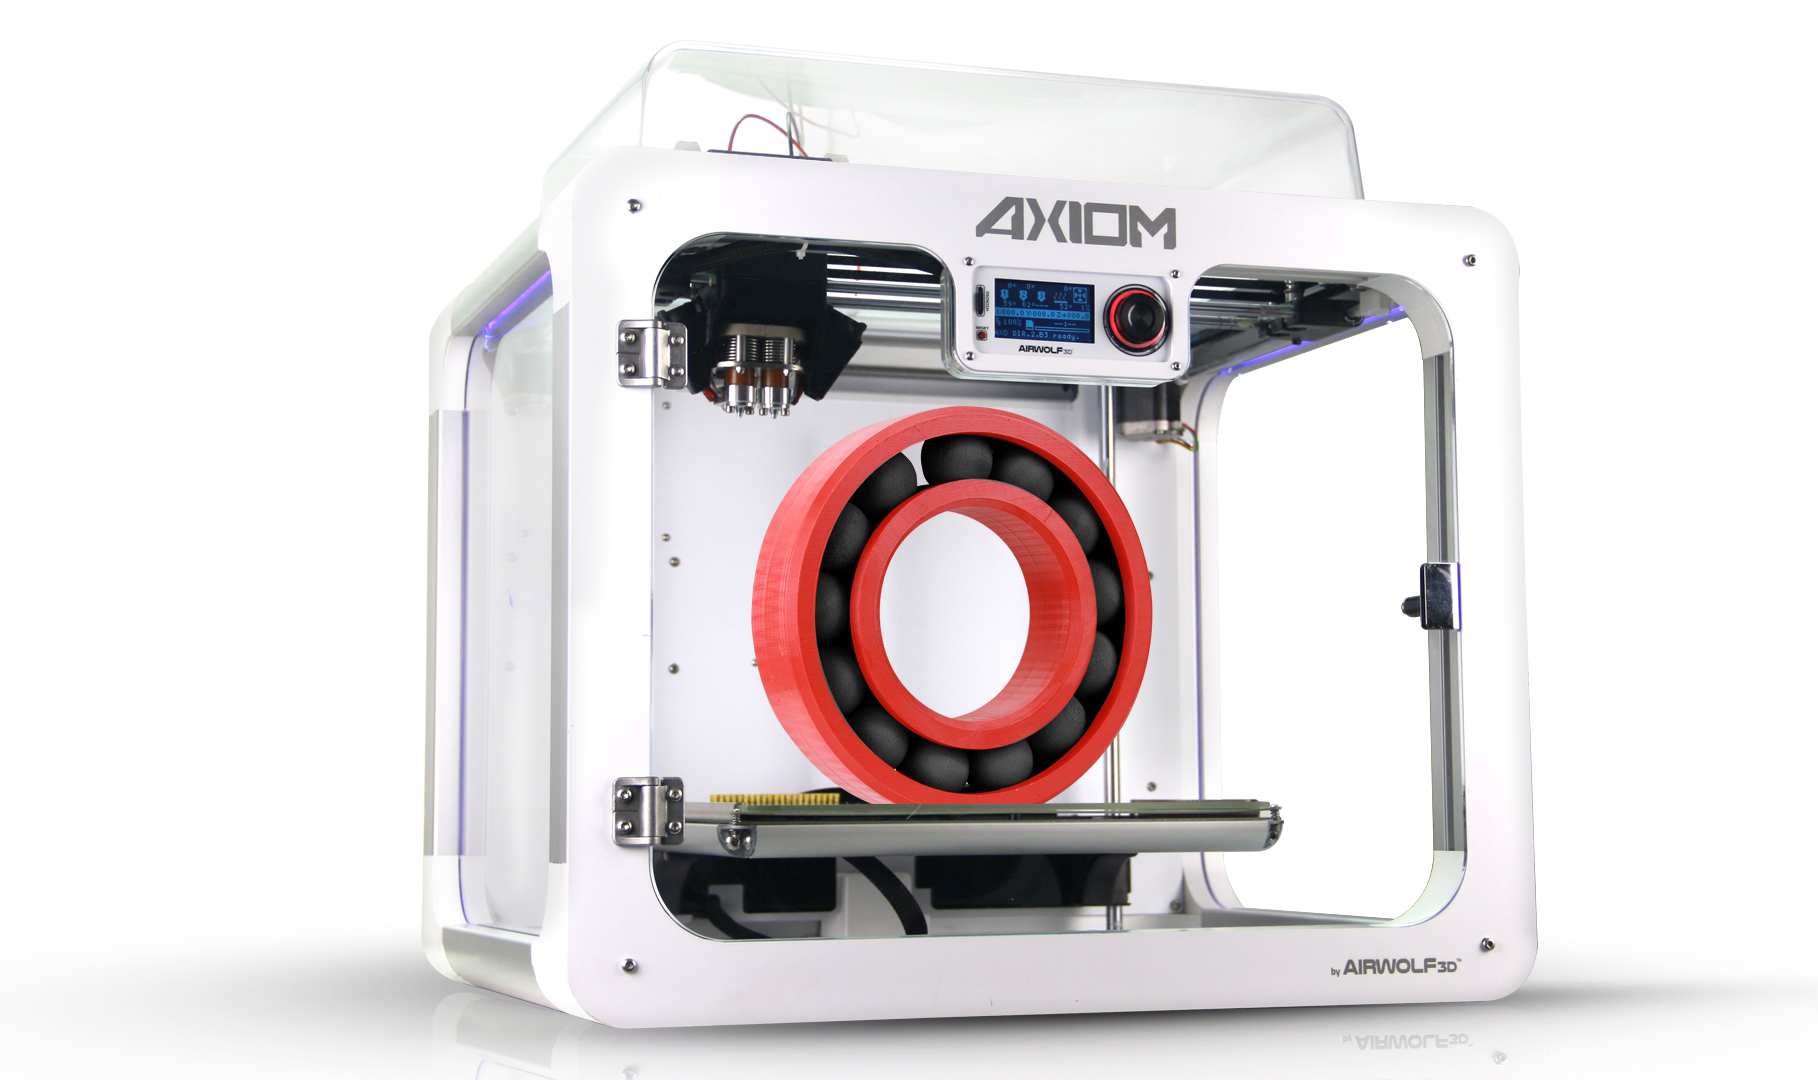 AXIOM Dual Direct Drive 3D Printer